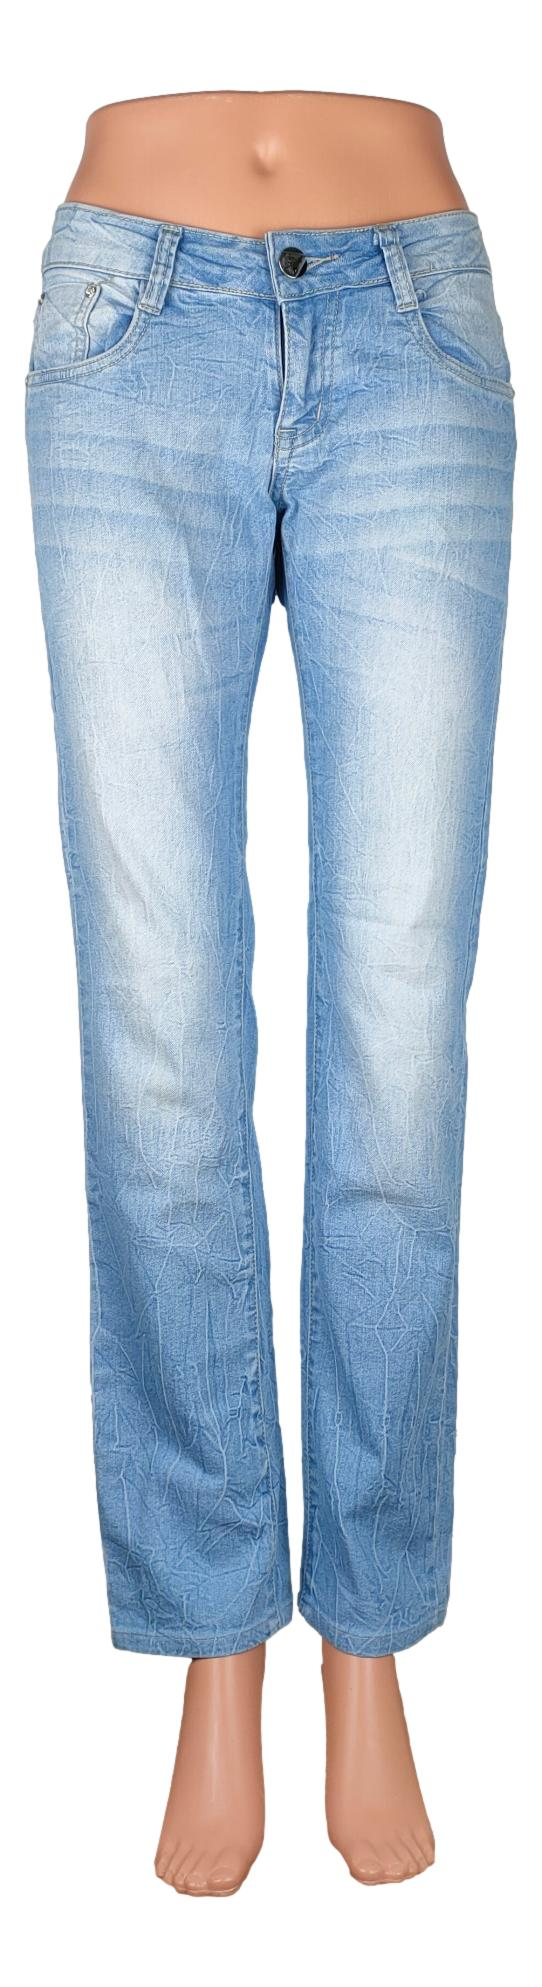 Jean Hot Bottom - Taille 38